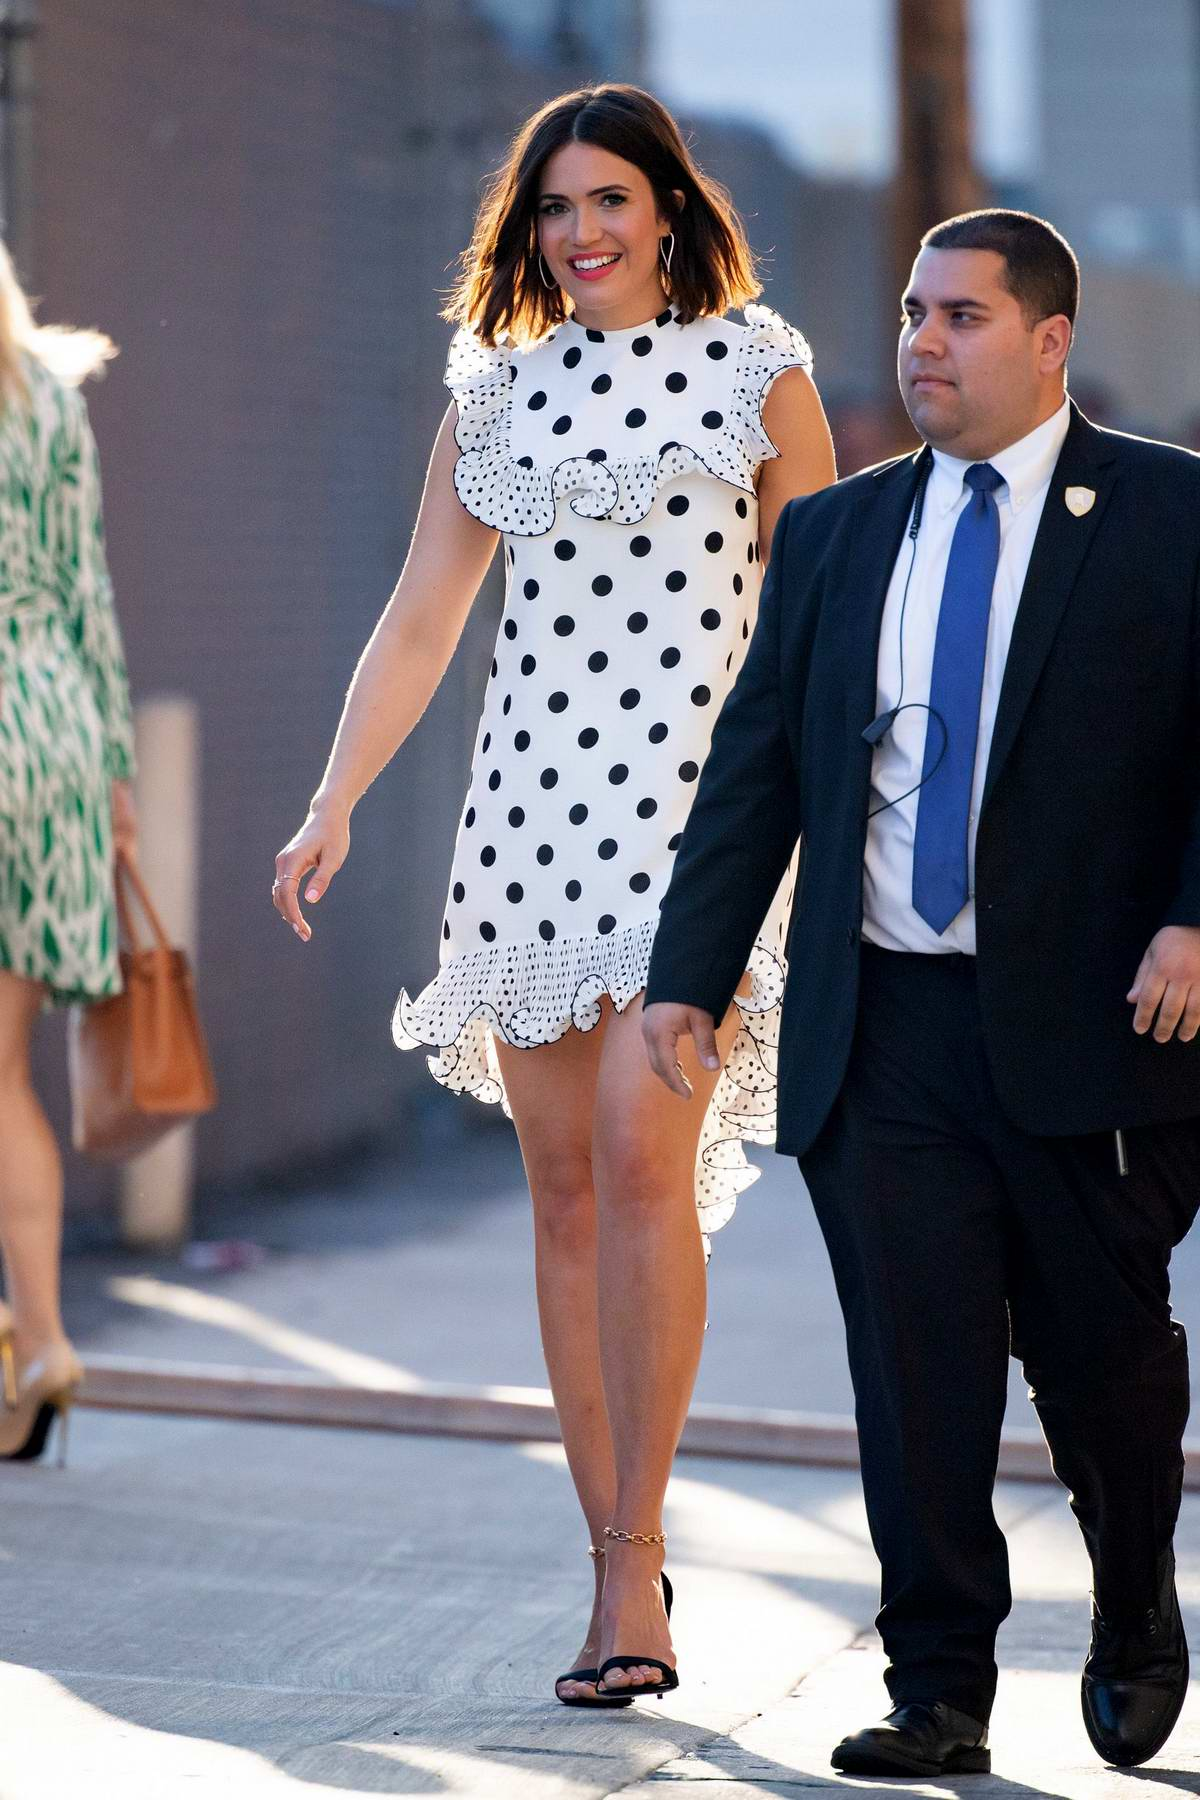 Mandy Moore looks pretty in a white polka dots dress as she arrives for her appearance on Jimmy Kimmel Live! in Hollywood, Los Angeles